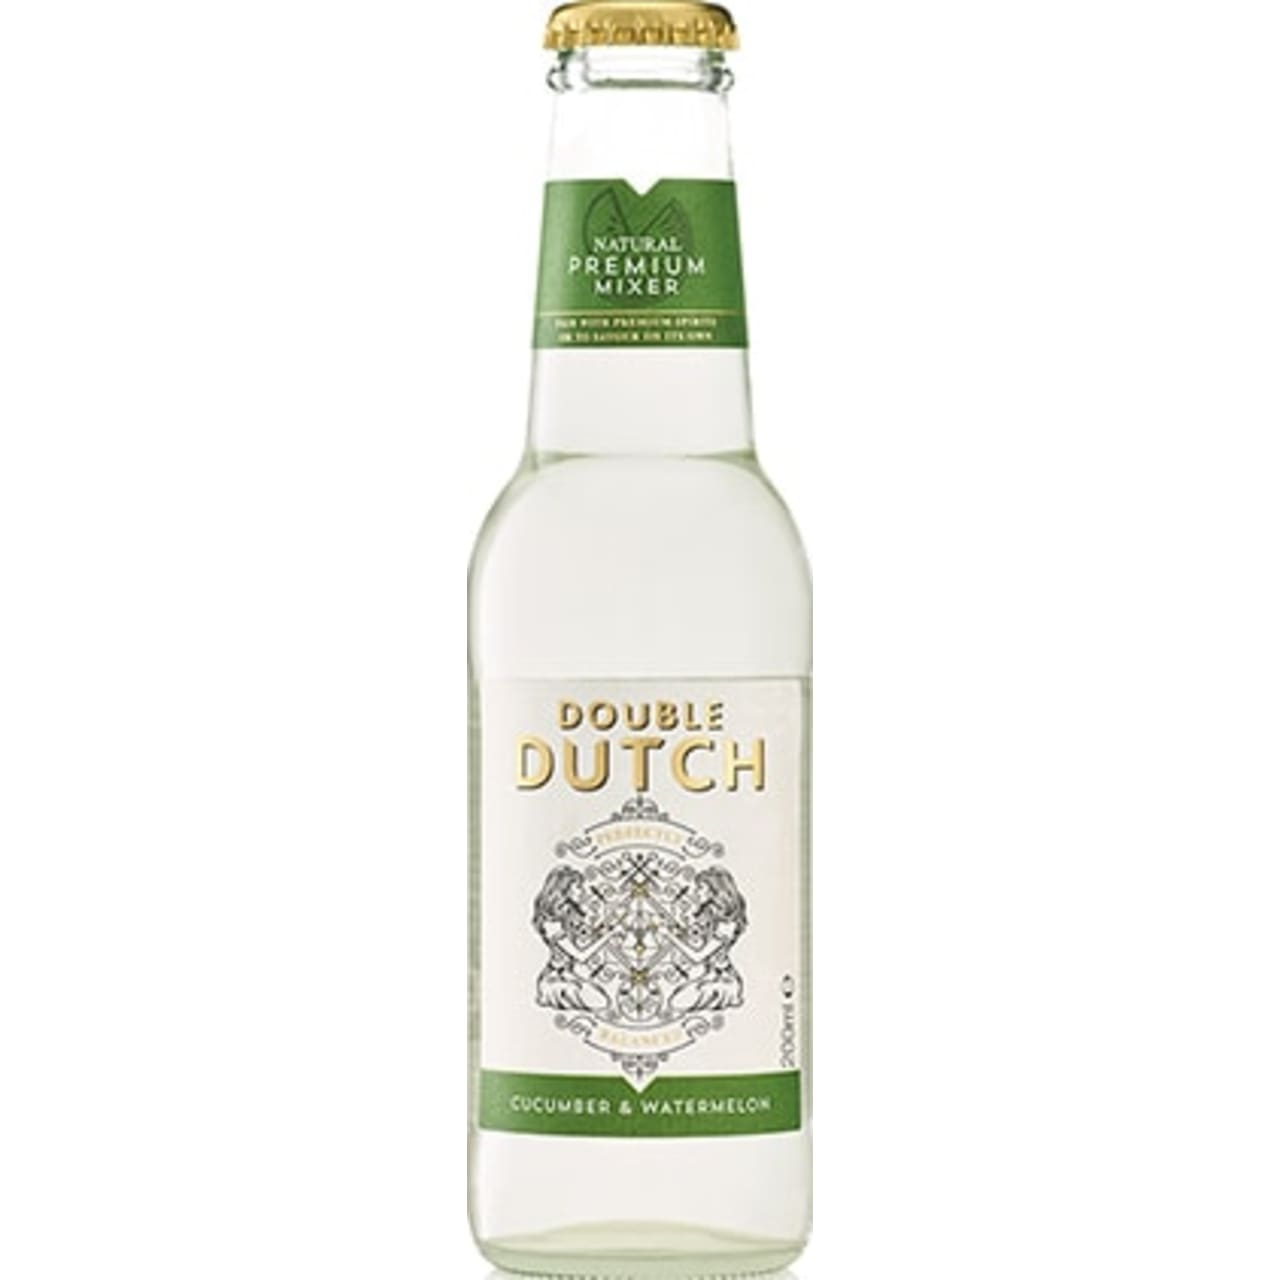 Product Image - Double Dutch Cucumber and Watermelon Tonic Pack of 24